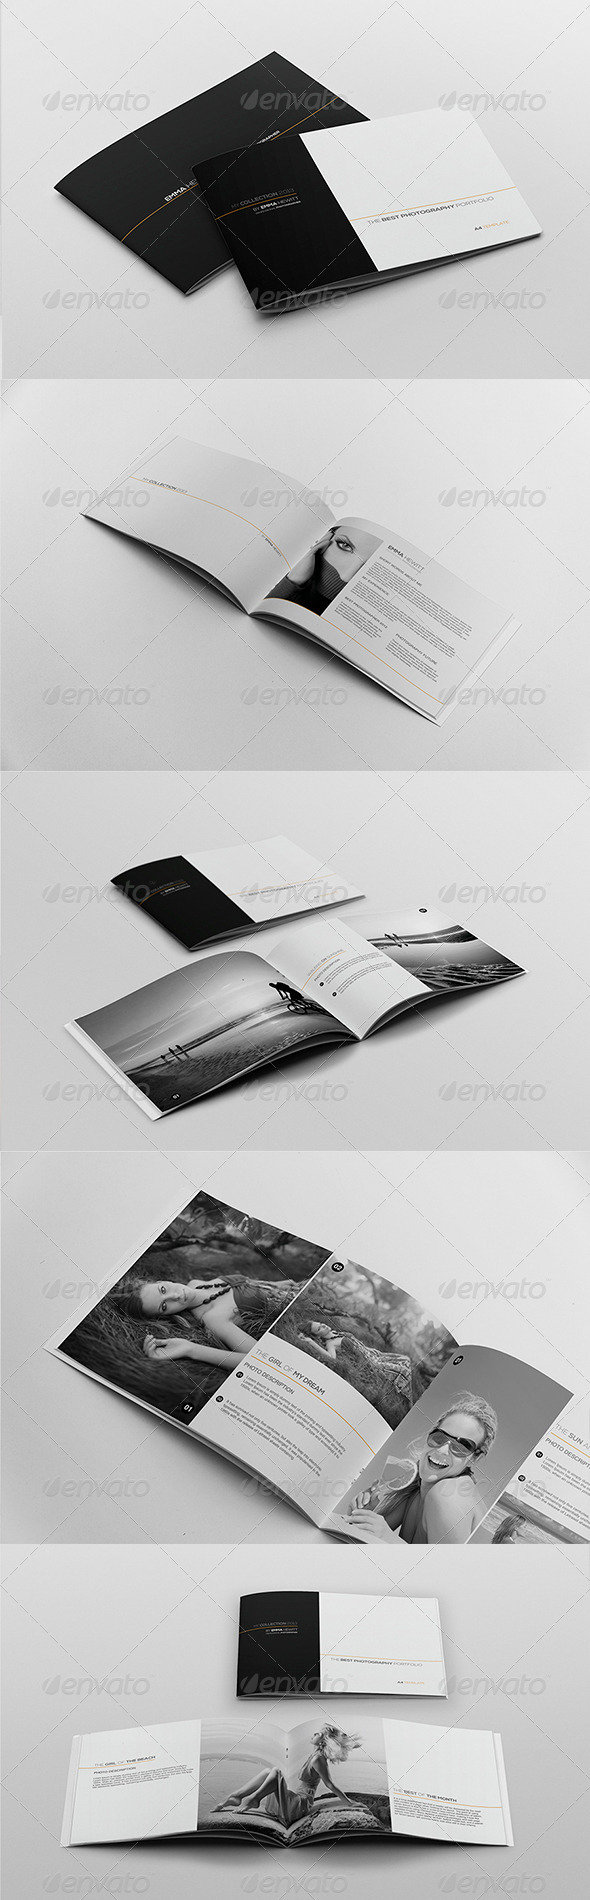 My Collection 2013 Portfolio Template - Portfolio Brochures